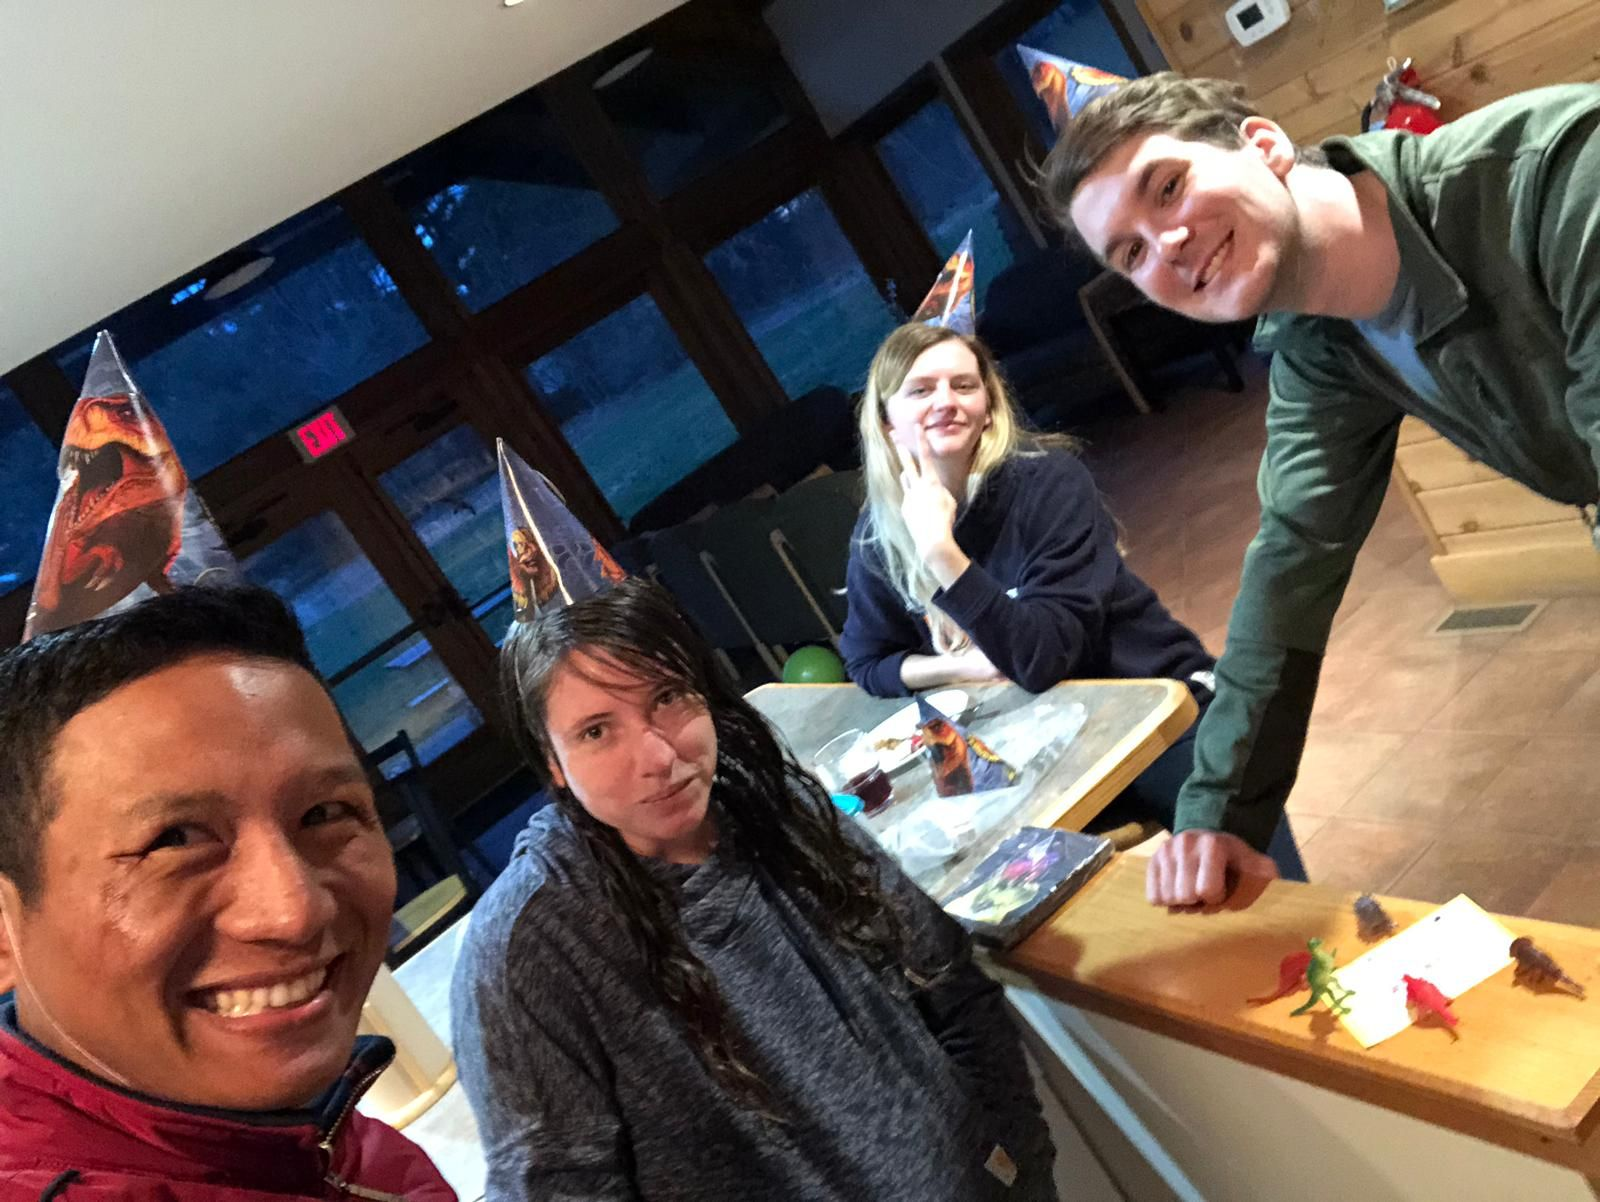 Lanso, Sandra, Shannon, and Colin celebrating a birthday in the Trainee Residence.